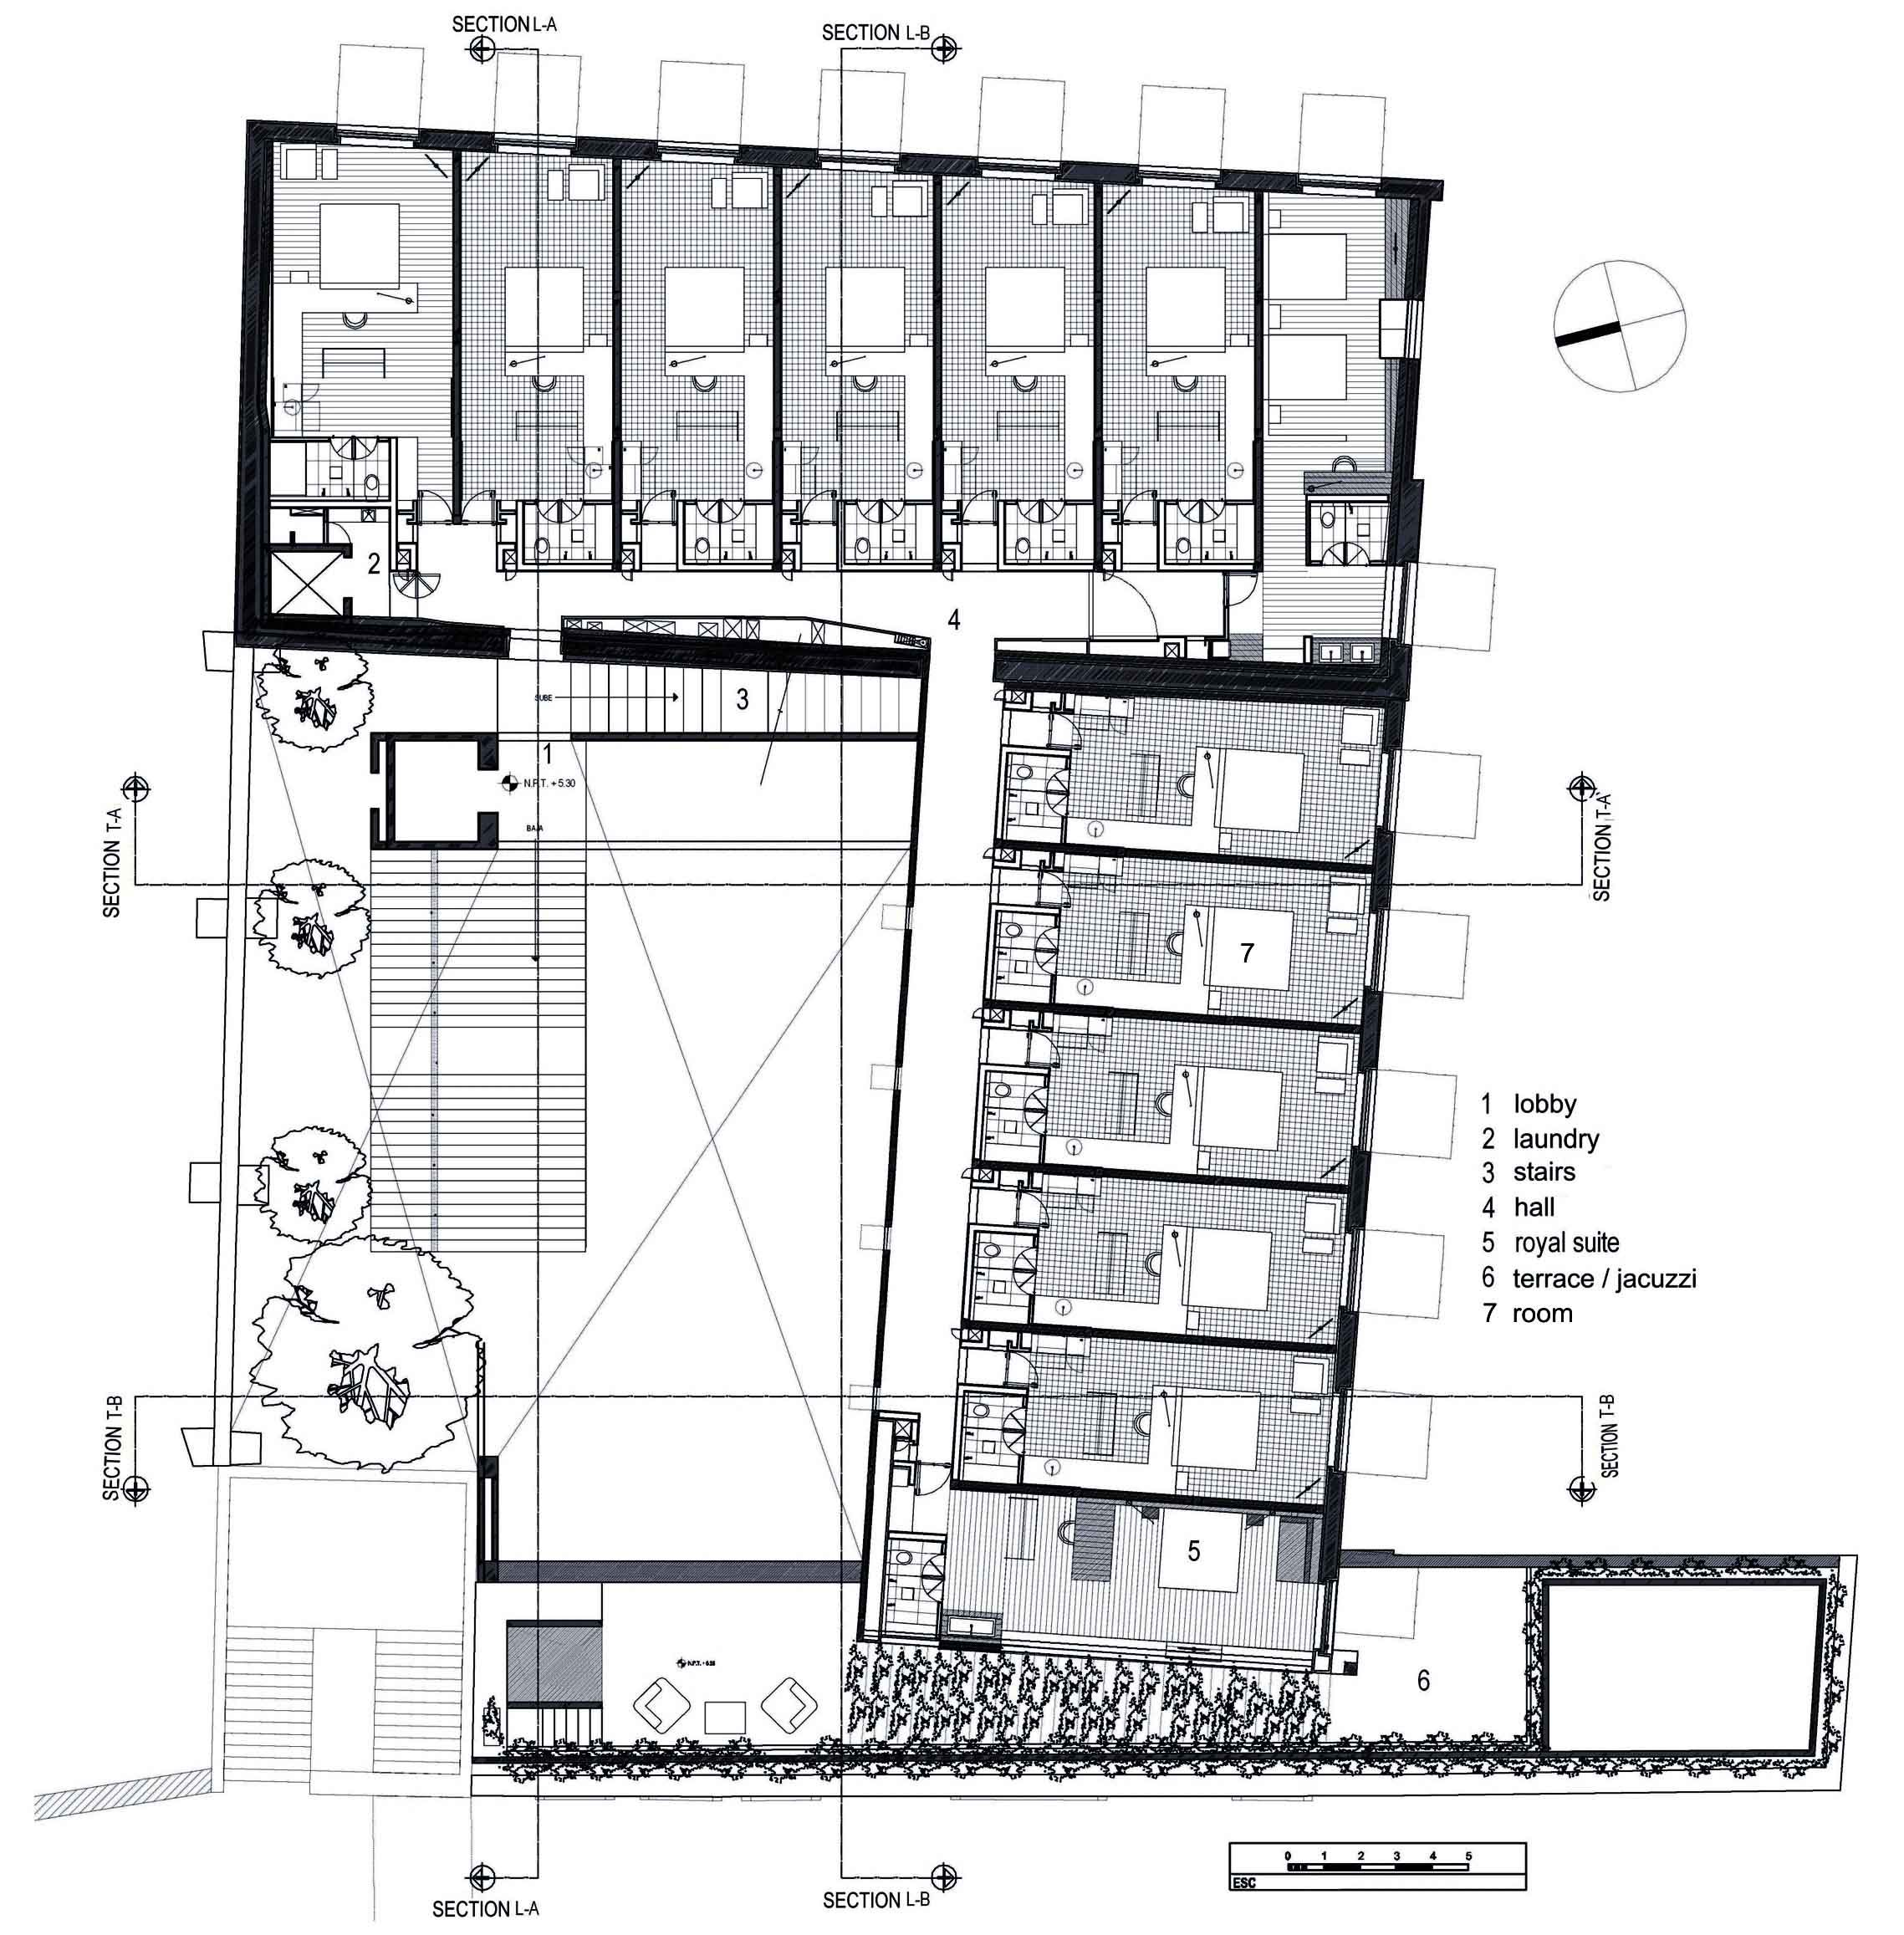 Plan Chambre Hotel La Purificadora Boutique Hotel Plans Google Search Floorplan